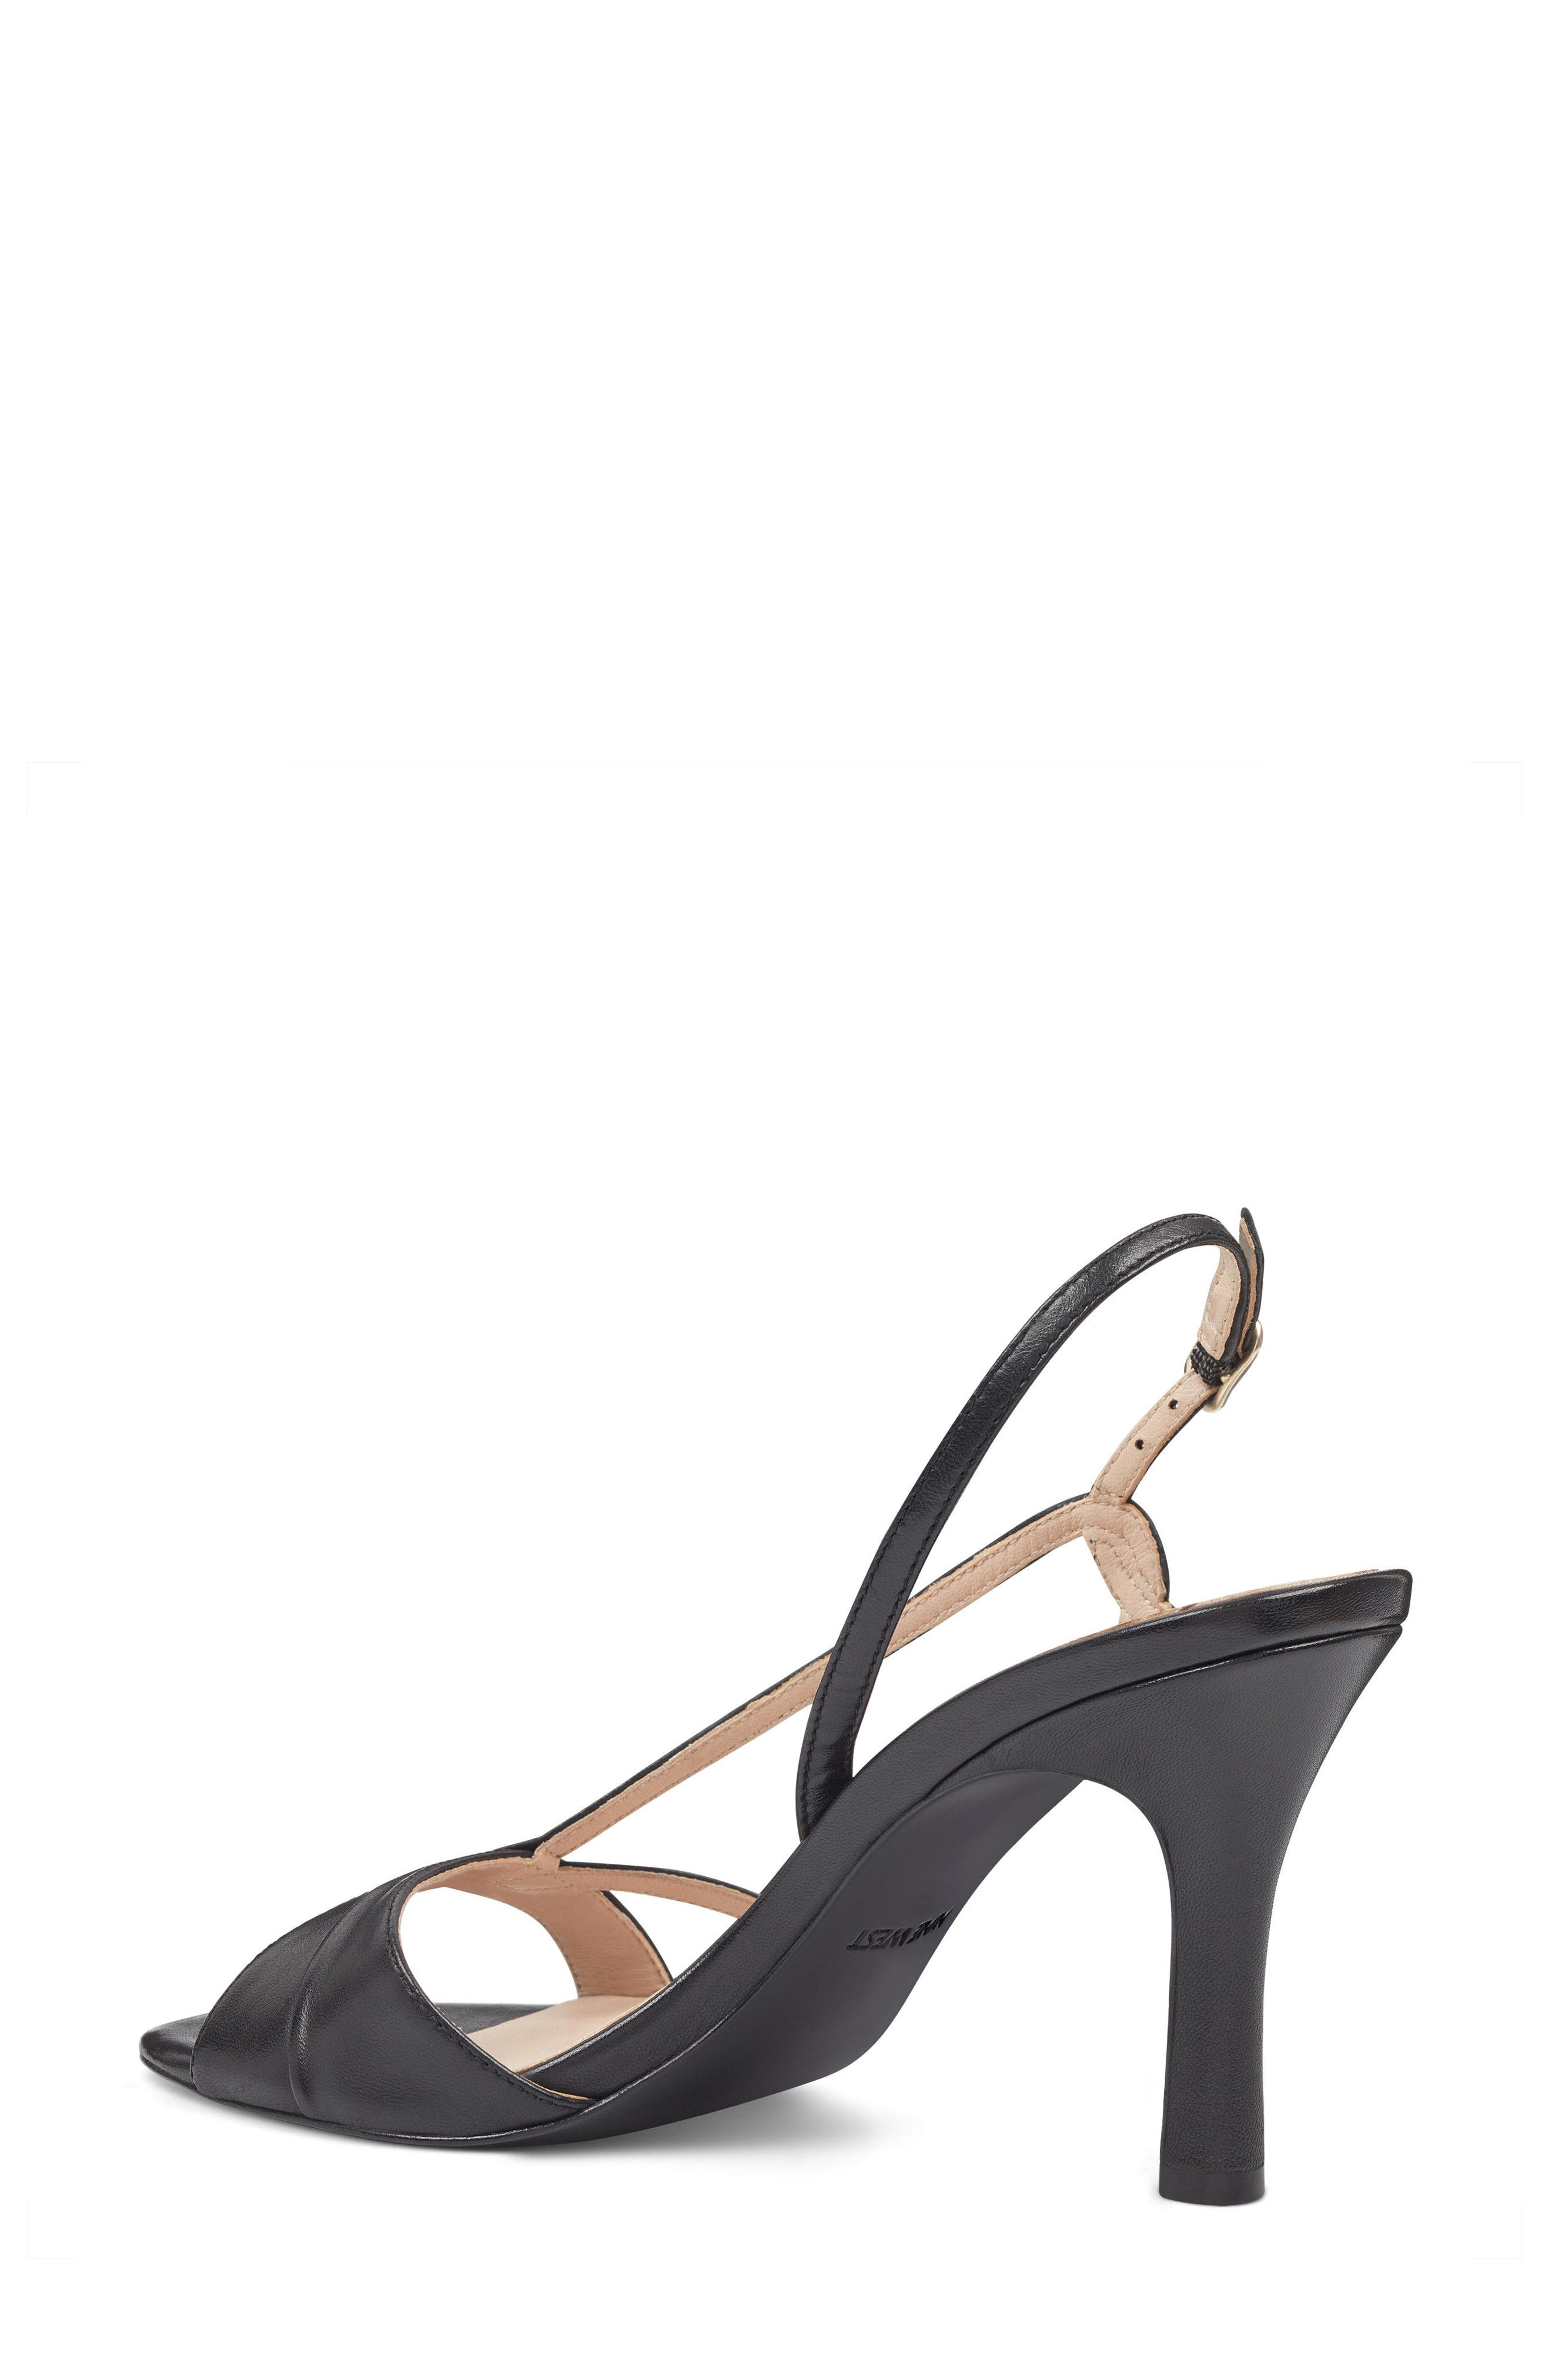 Accolia - 40th Anniversary Capsule Collection Sandal,                             Alternate thumbnail 2, color,                             BLACK LEATHER